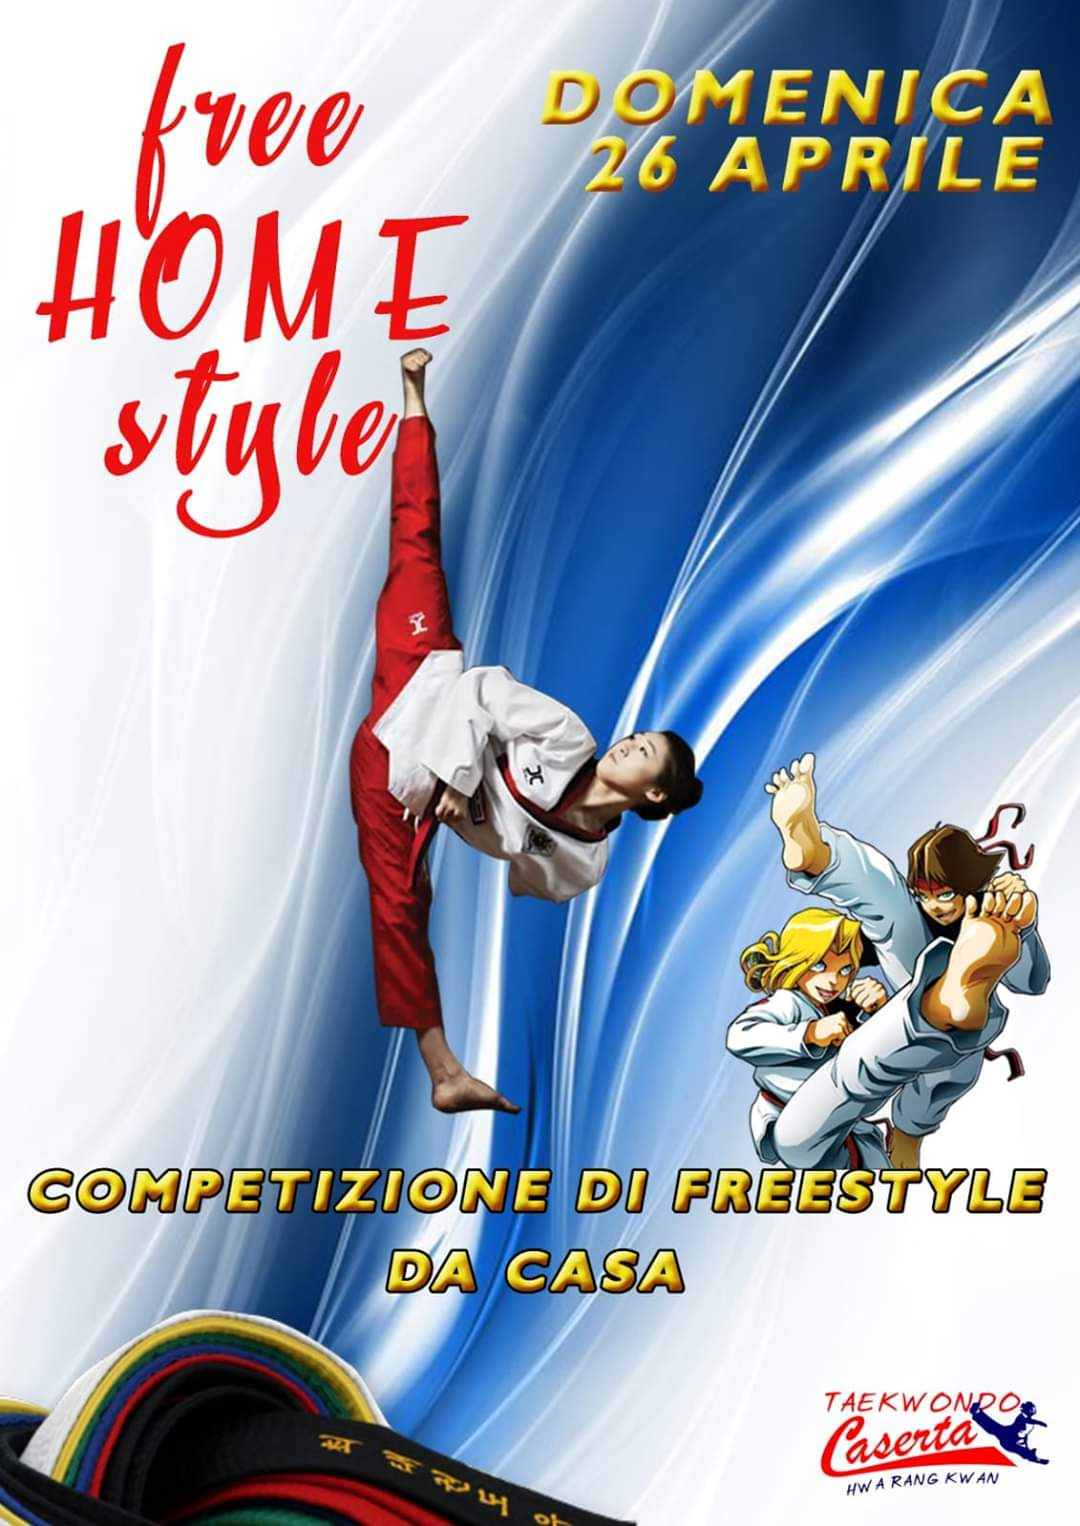 Video  del Free Home Style